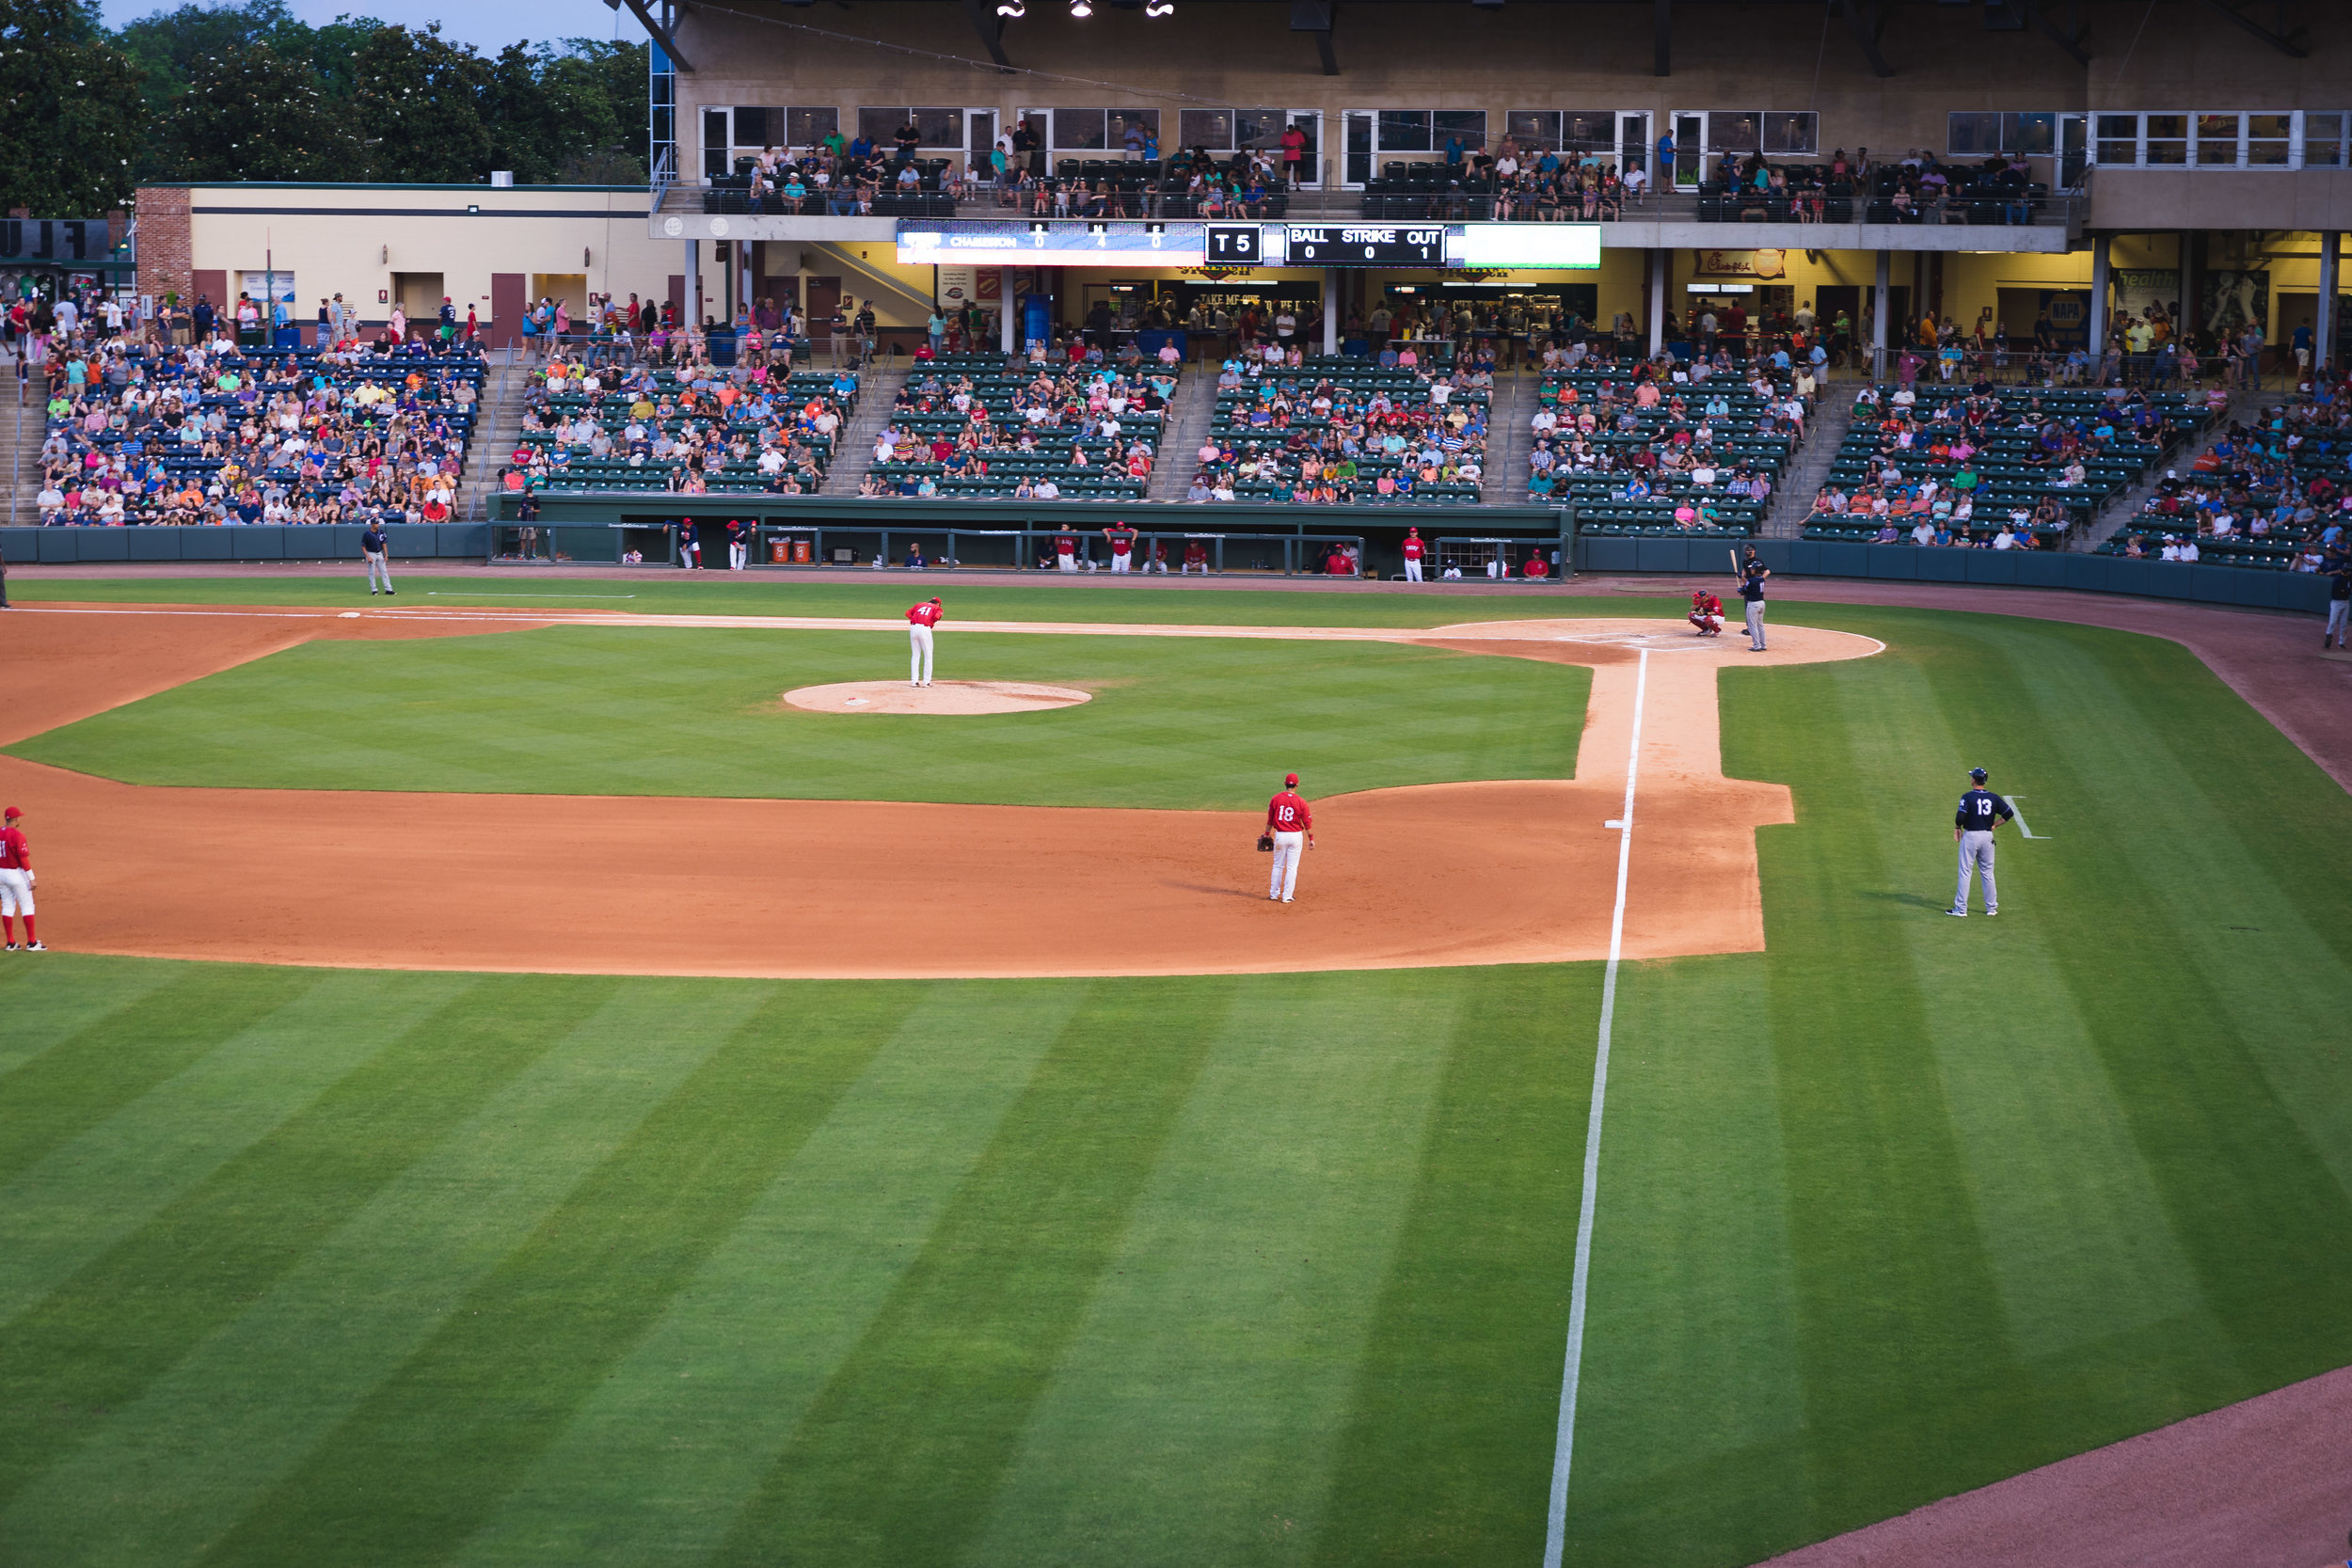 Flour Field Baseball Game in Downtown Greenville SC